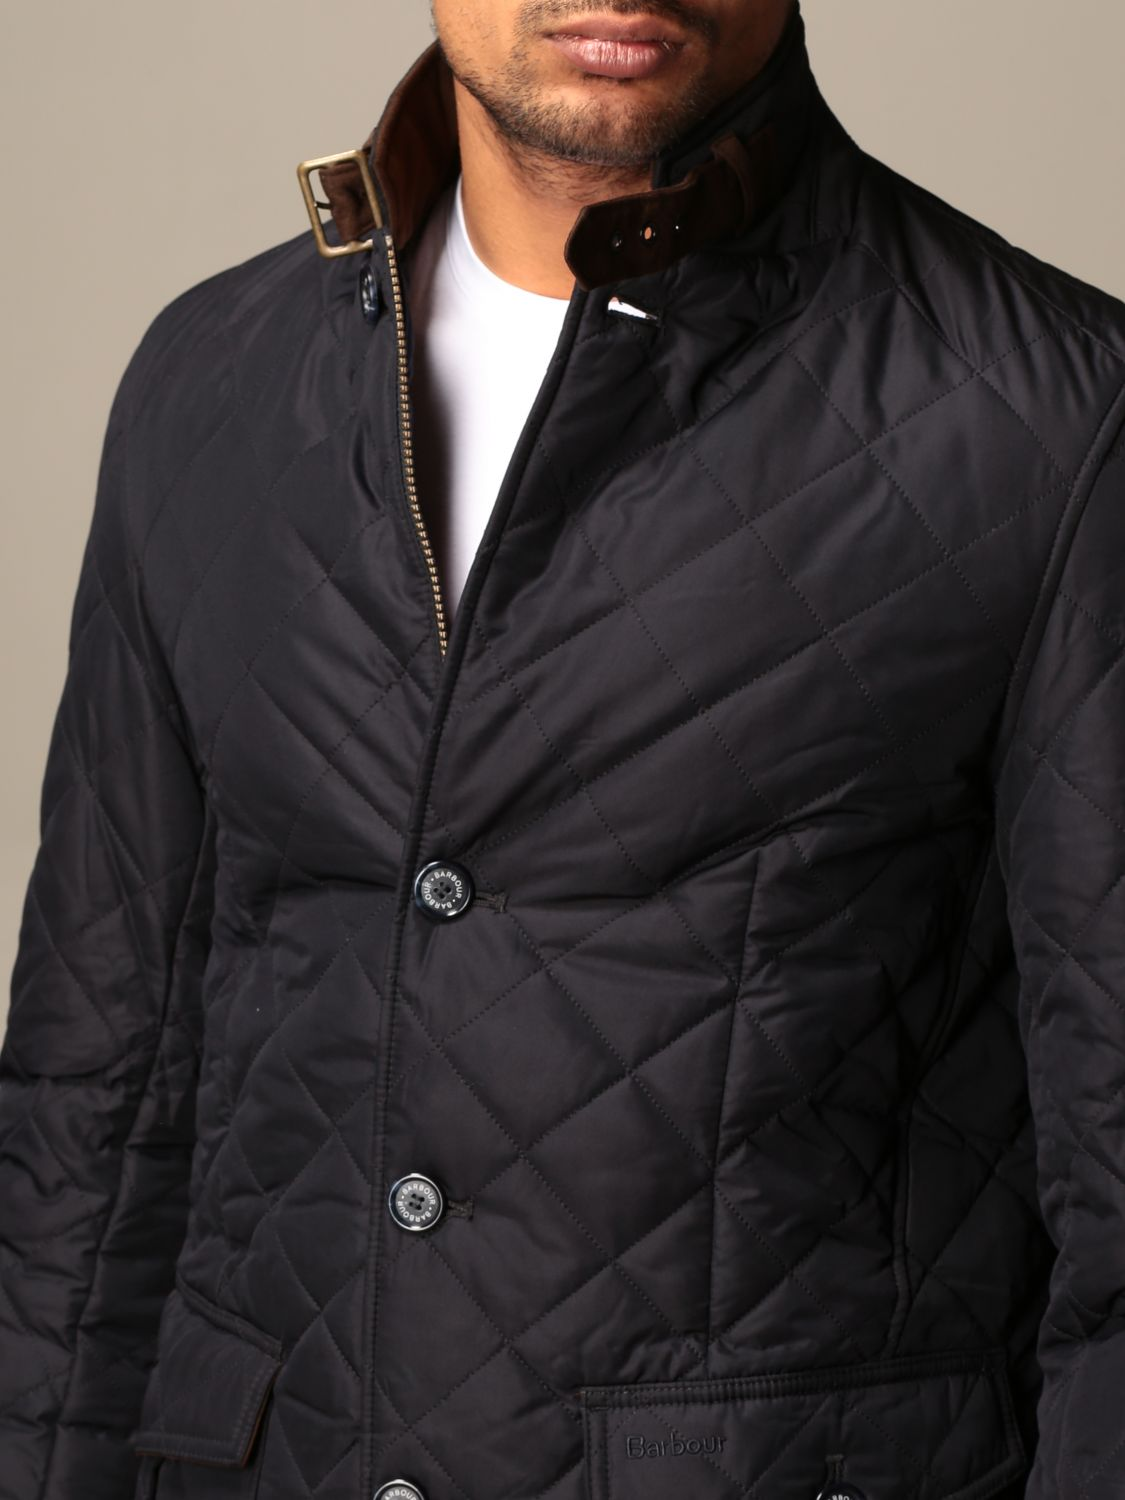 Jacket Barbour: Classic Barbour diamond quilted jacket blue 4